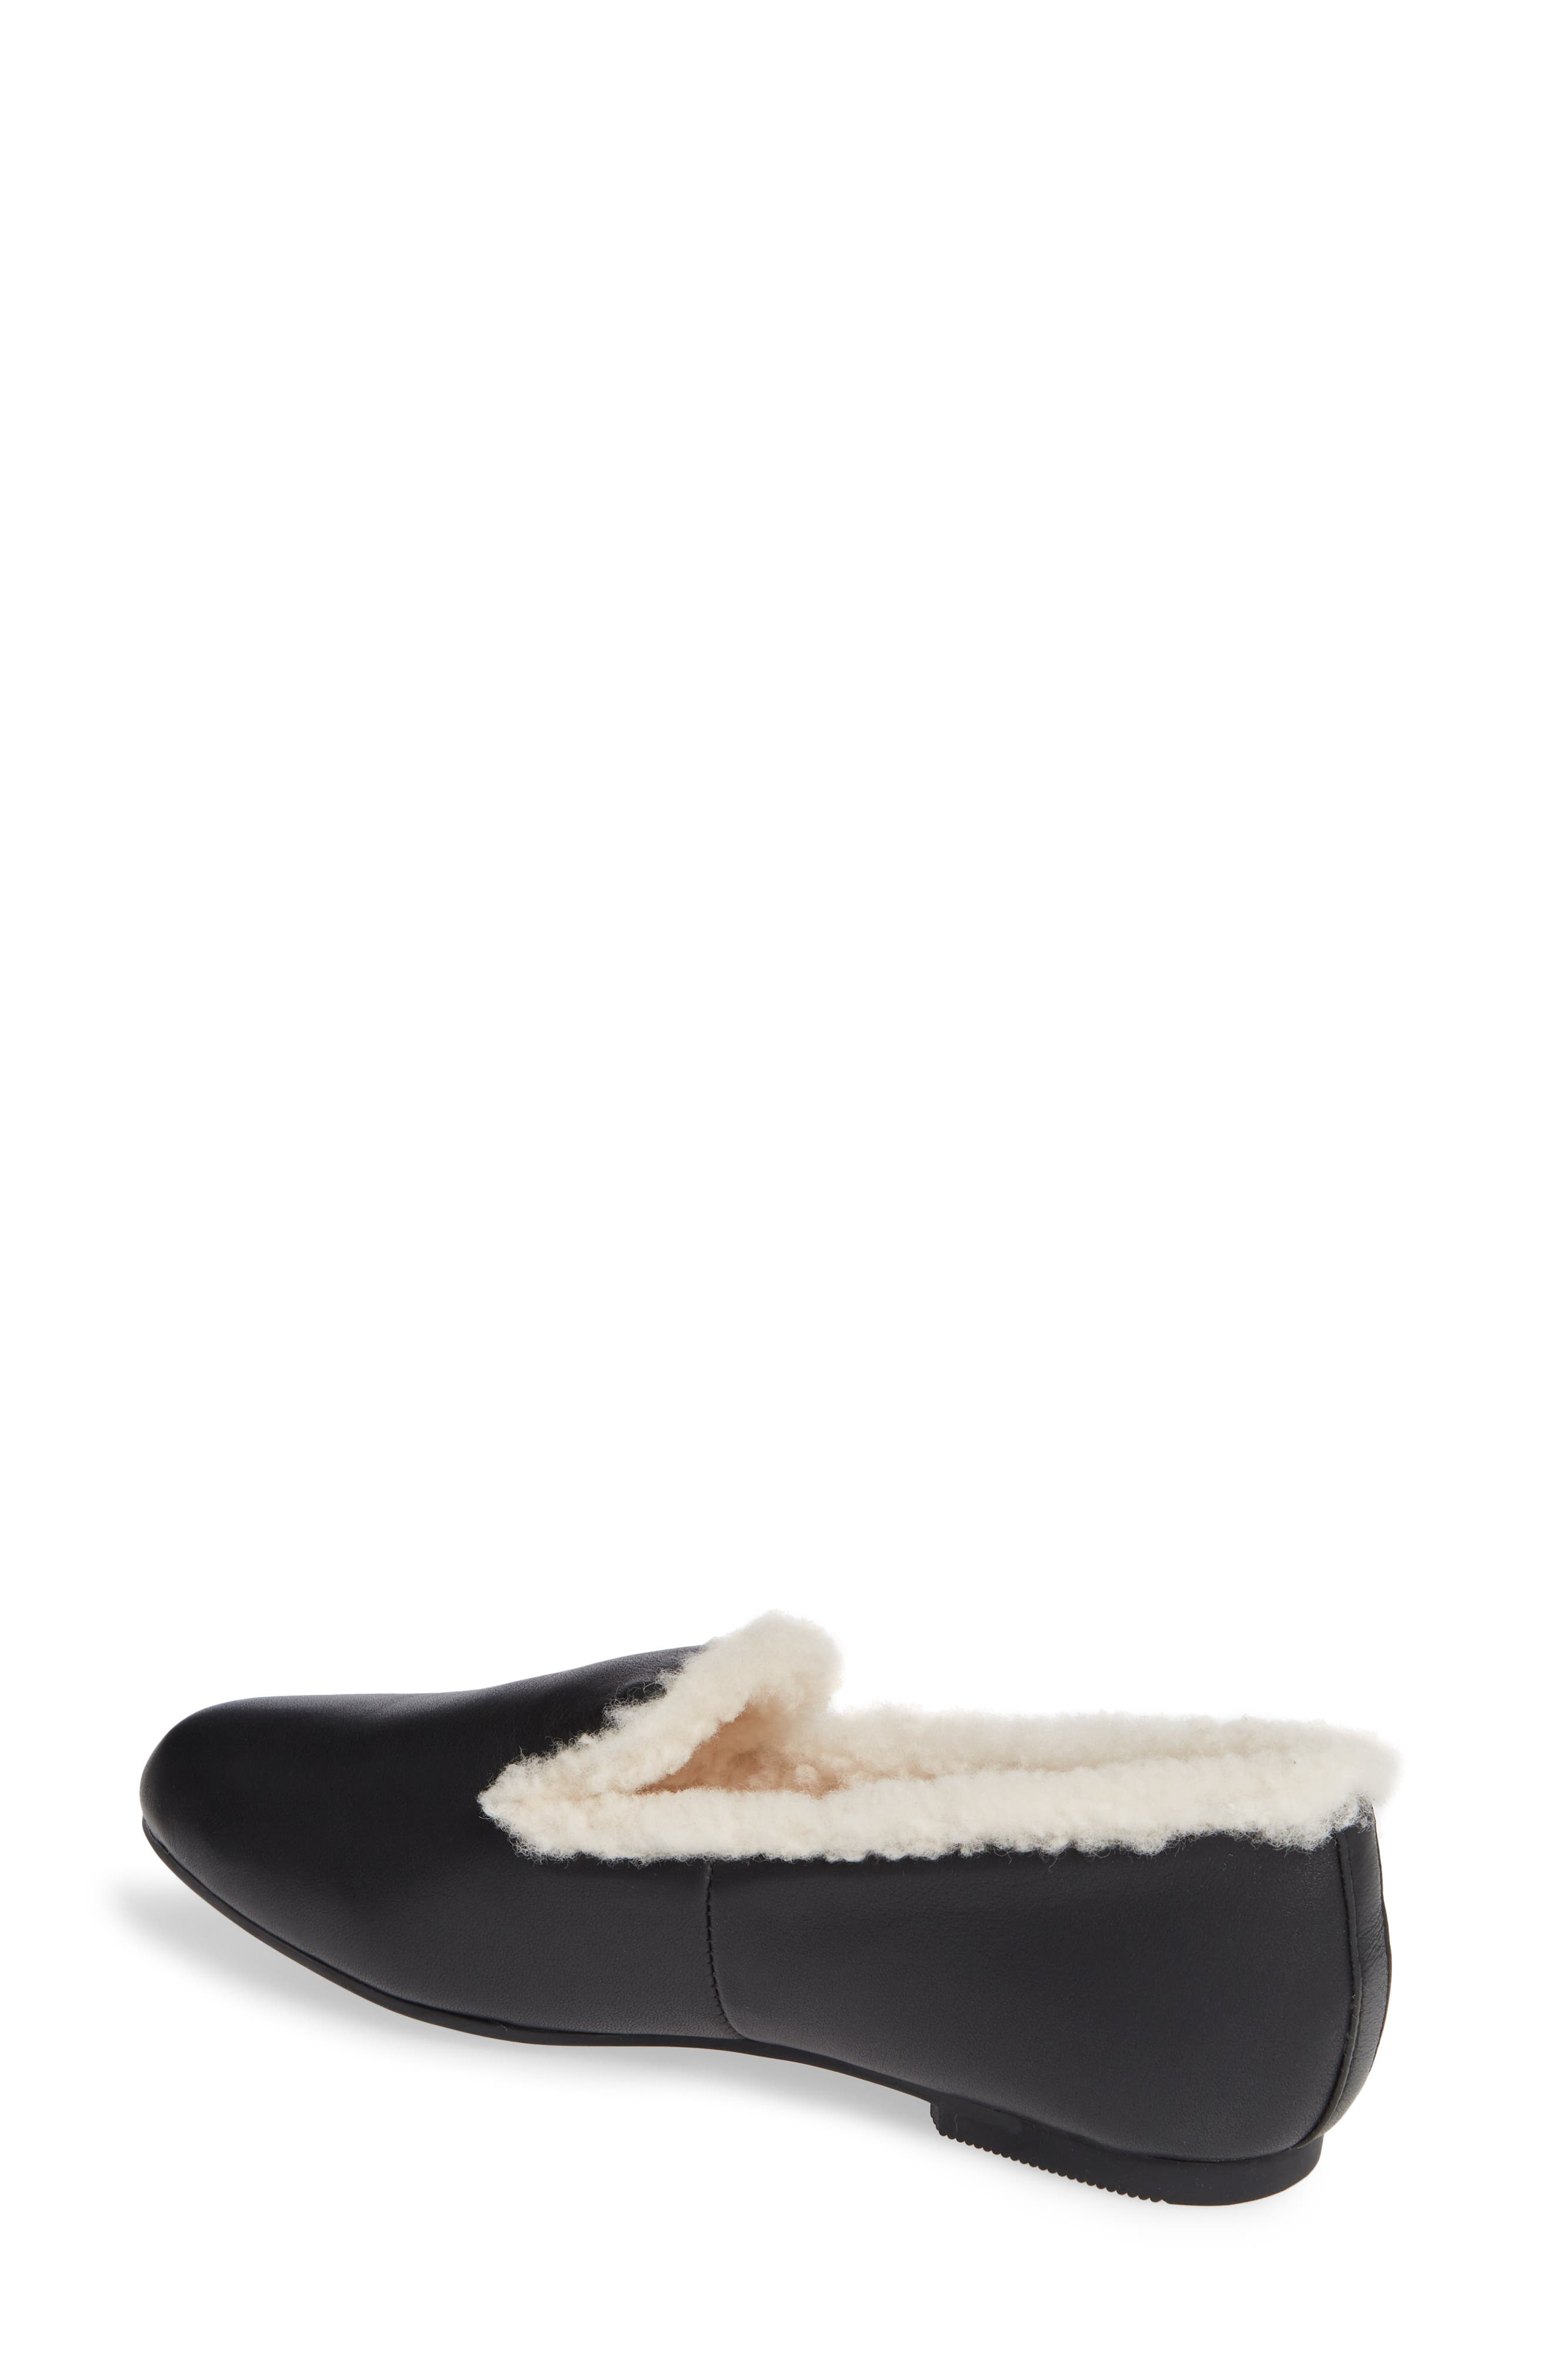 GENTLE SOULS BY KENNETH COLE, Eugene Genuine Shearling Lined Loafer, Alternate thumbnail 2, color, 011